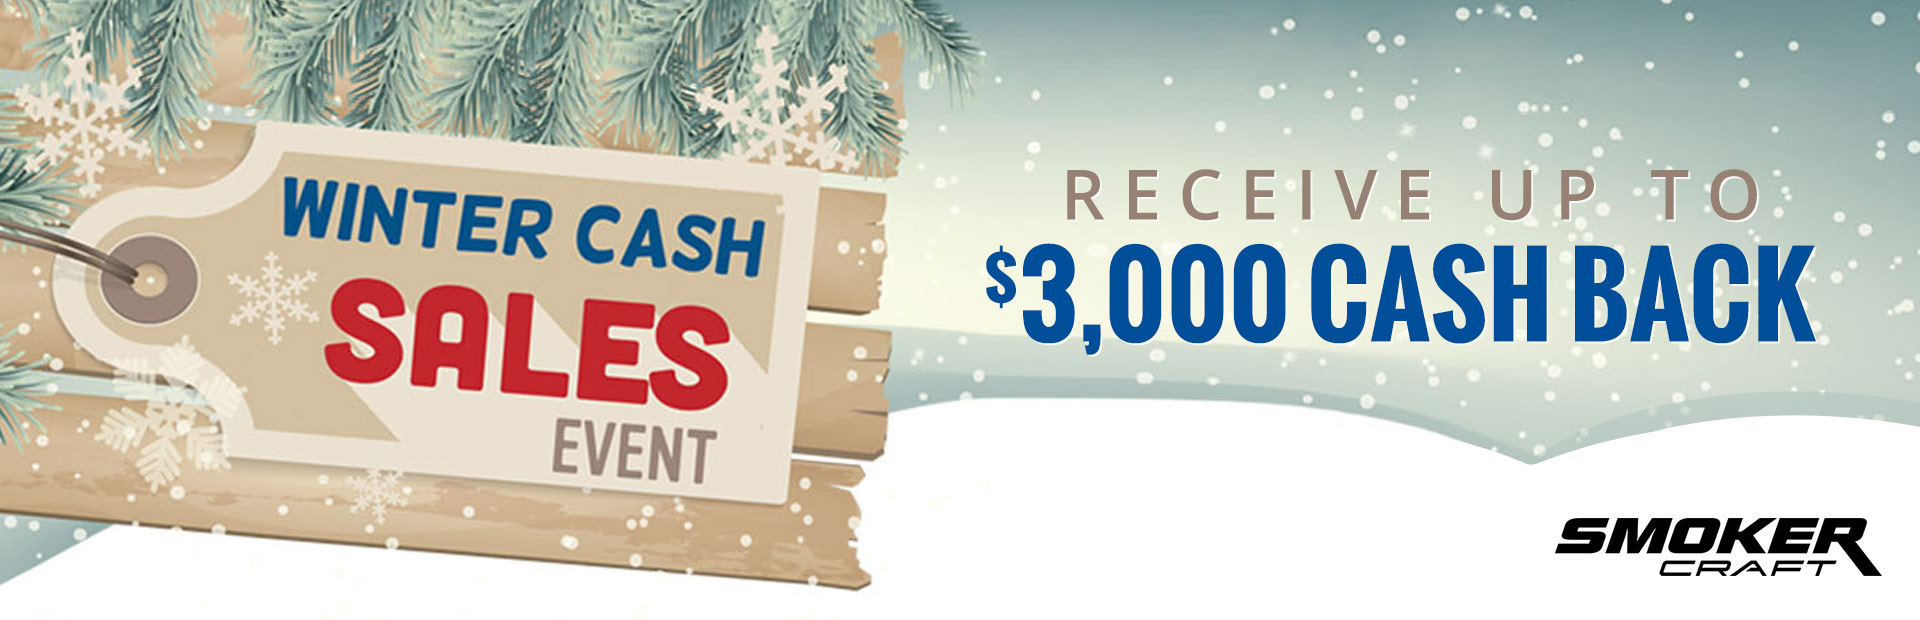 Smoker Craft: Winter Cash Sales Event